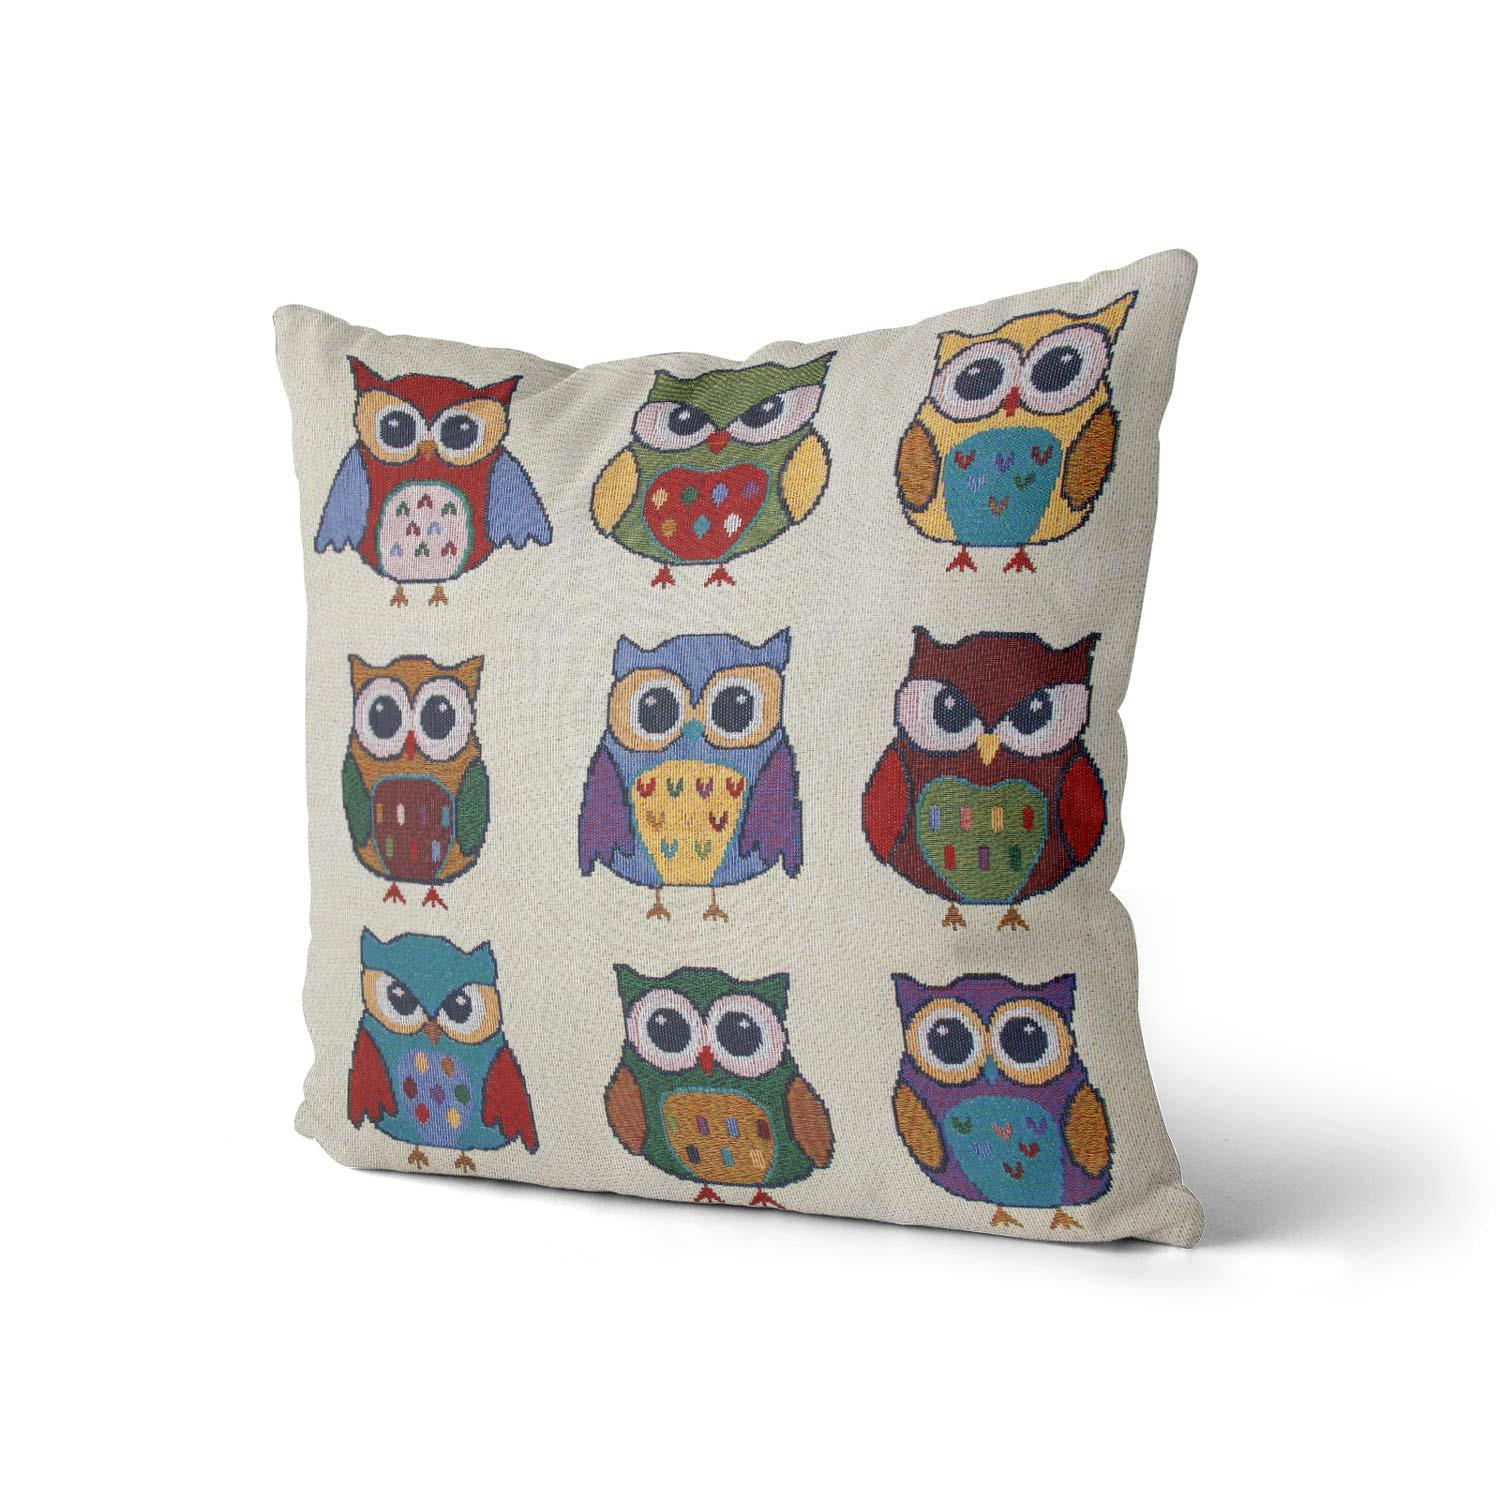 Tapestry-Cushion-Covers-Vintage-Pillow-Cover-Collection-18-034-45cm-Filled-Cushions thumbnail 160